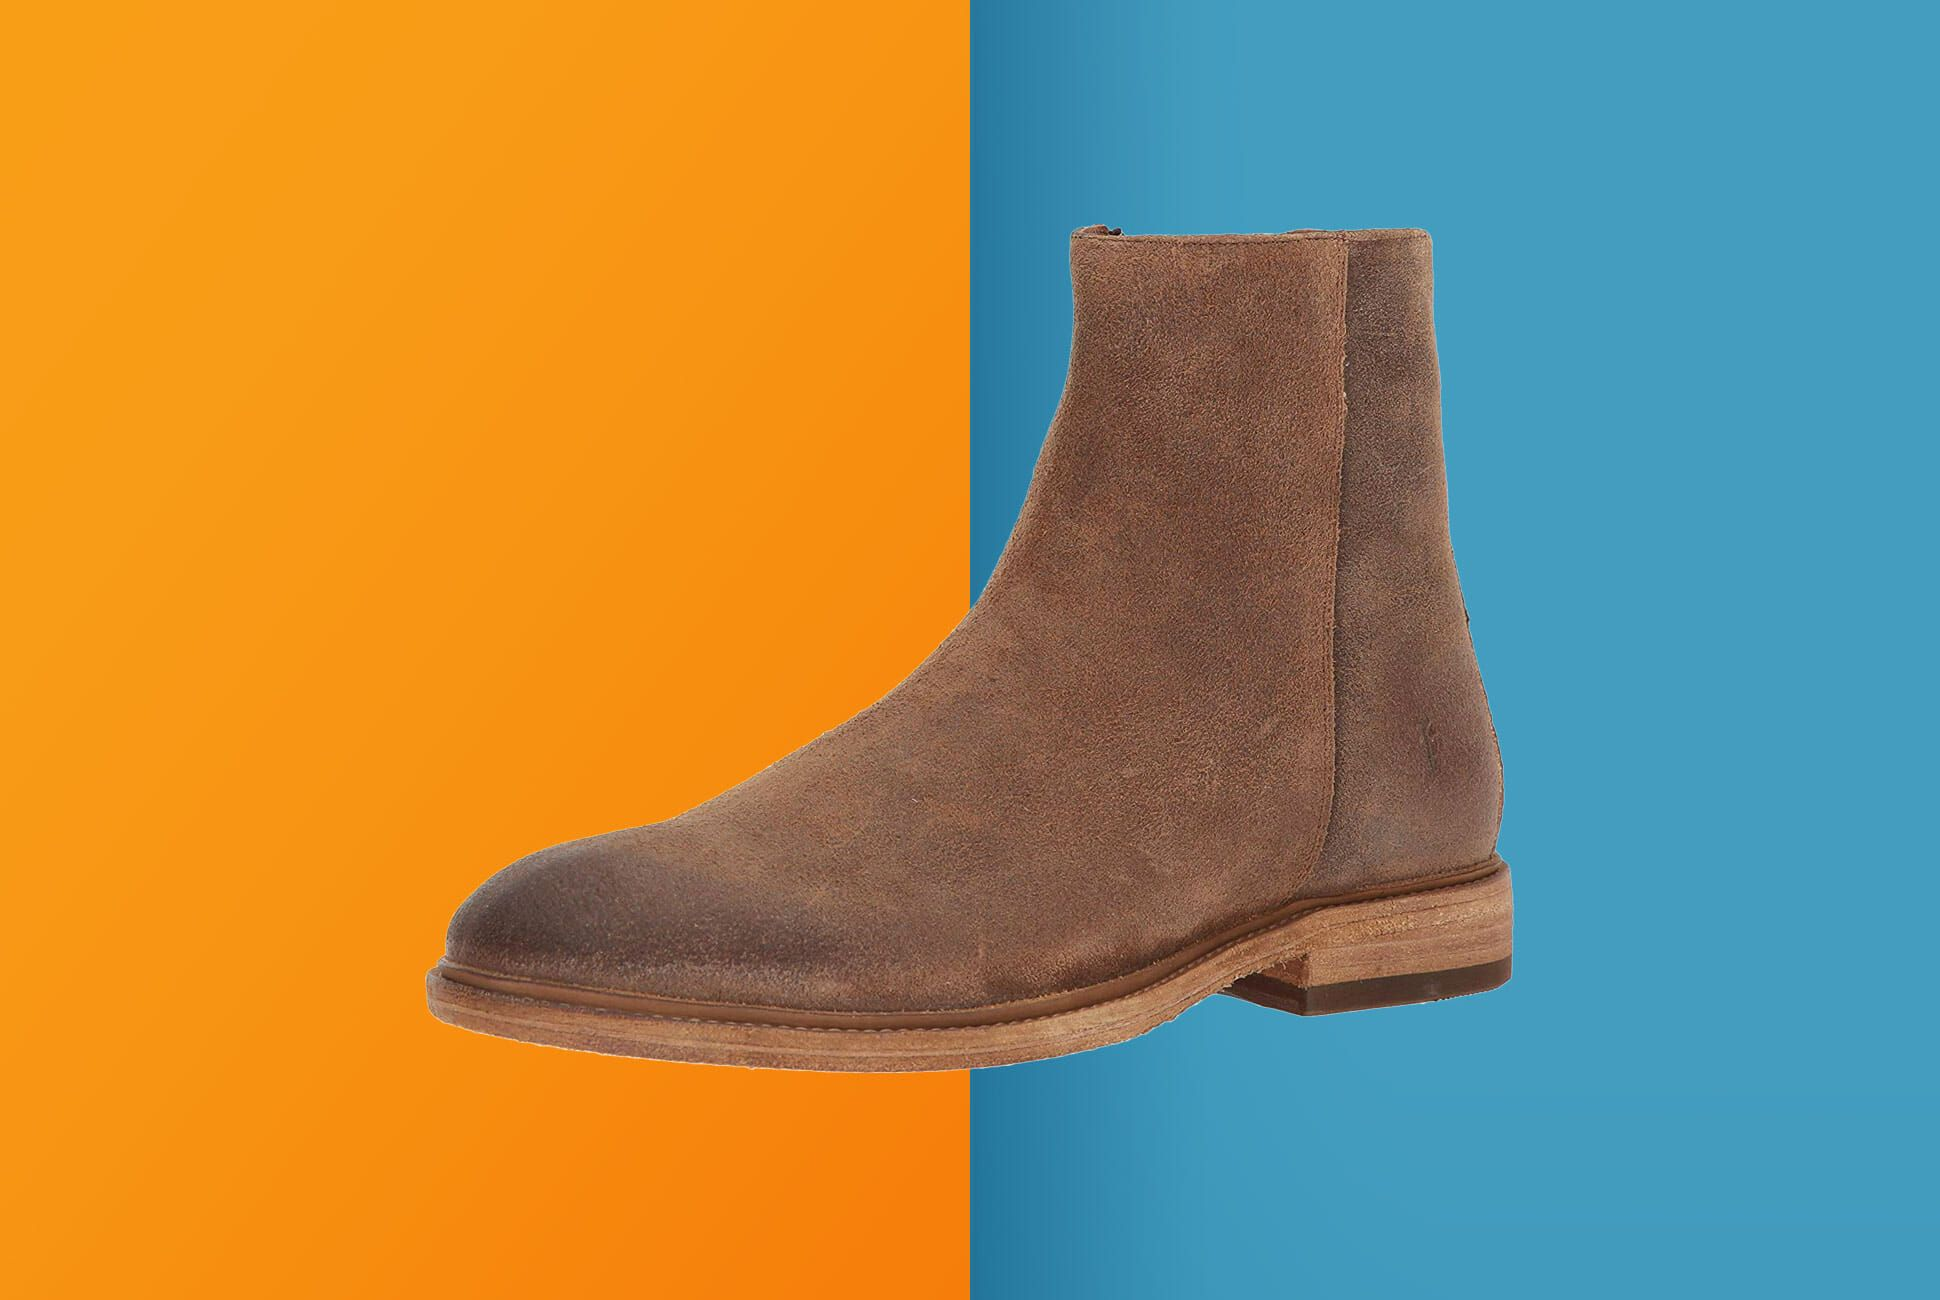 Frye's High Quality Boots and Shoes Are